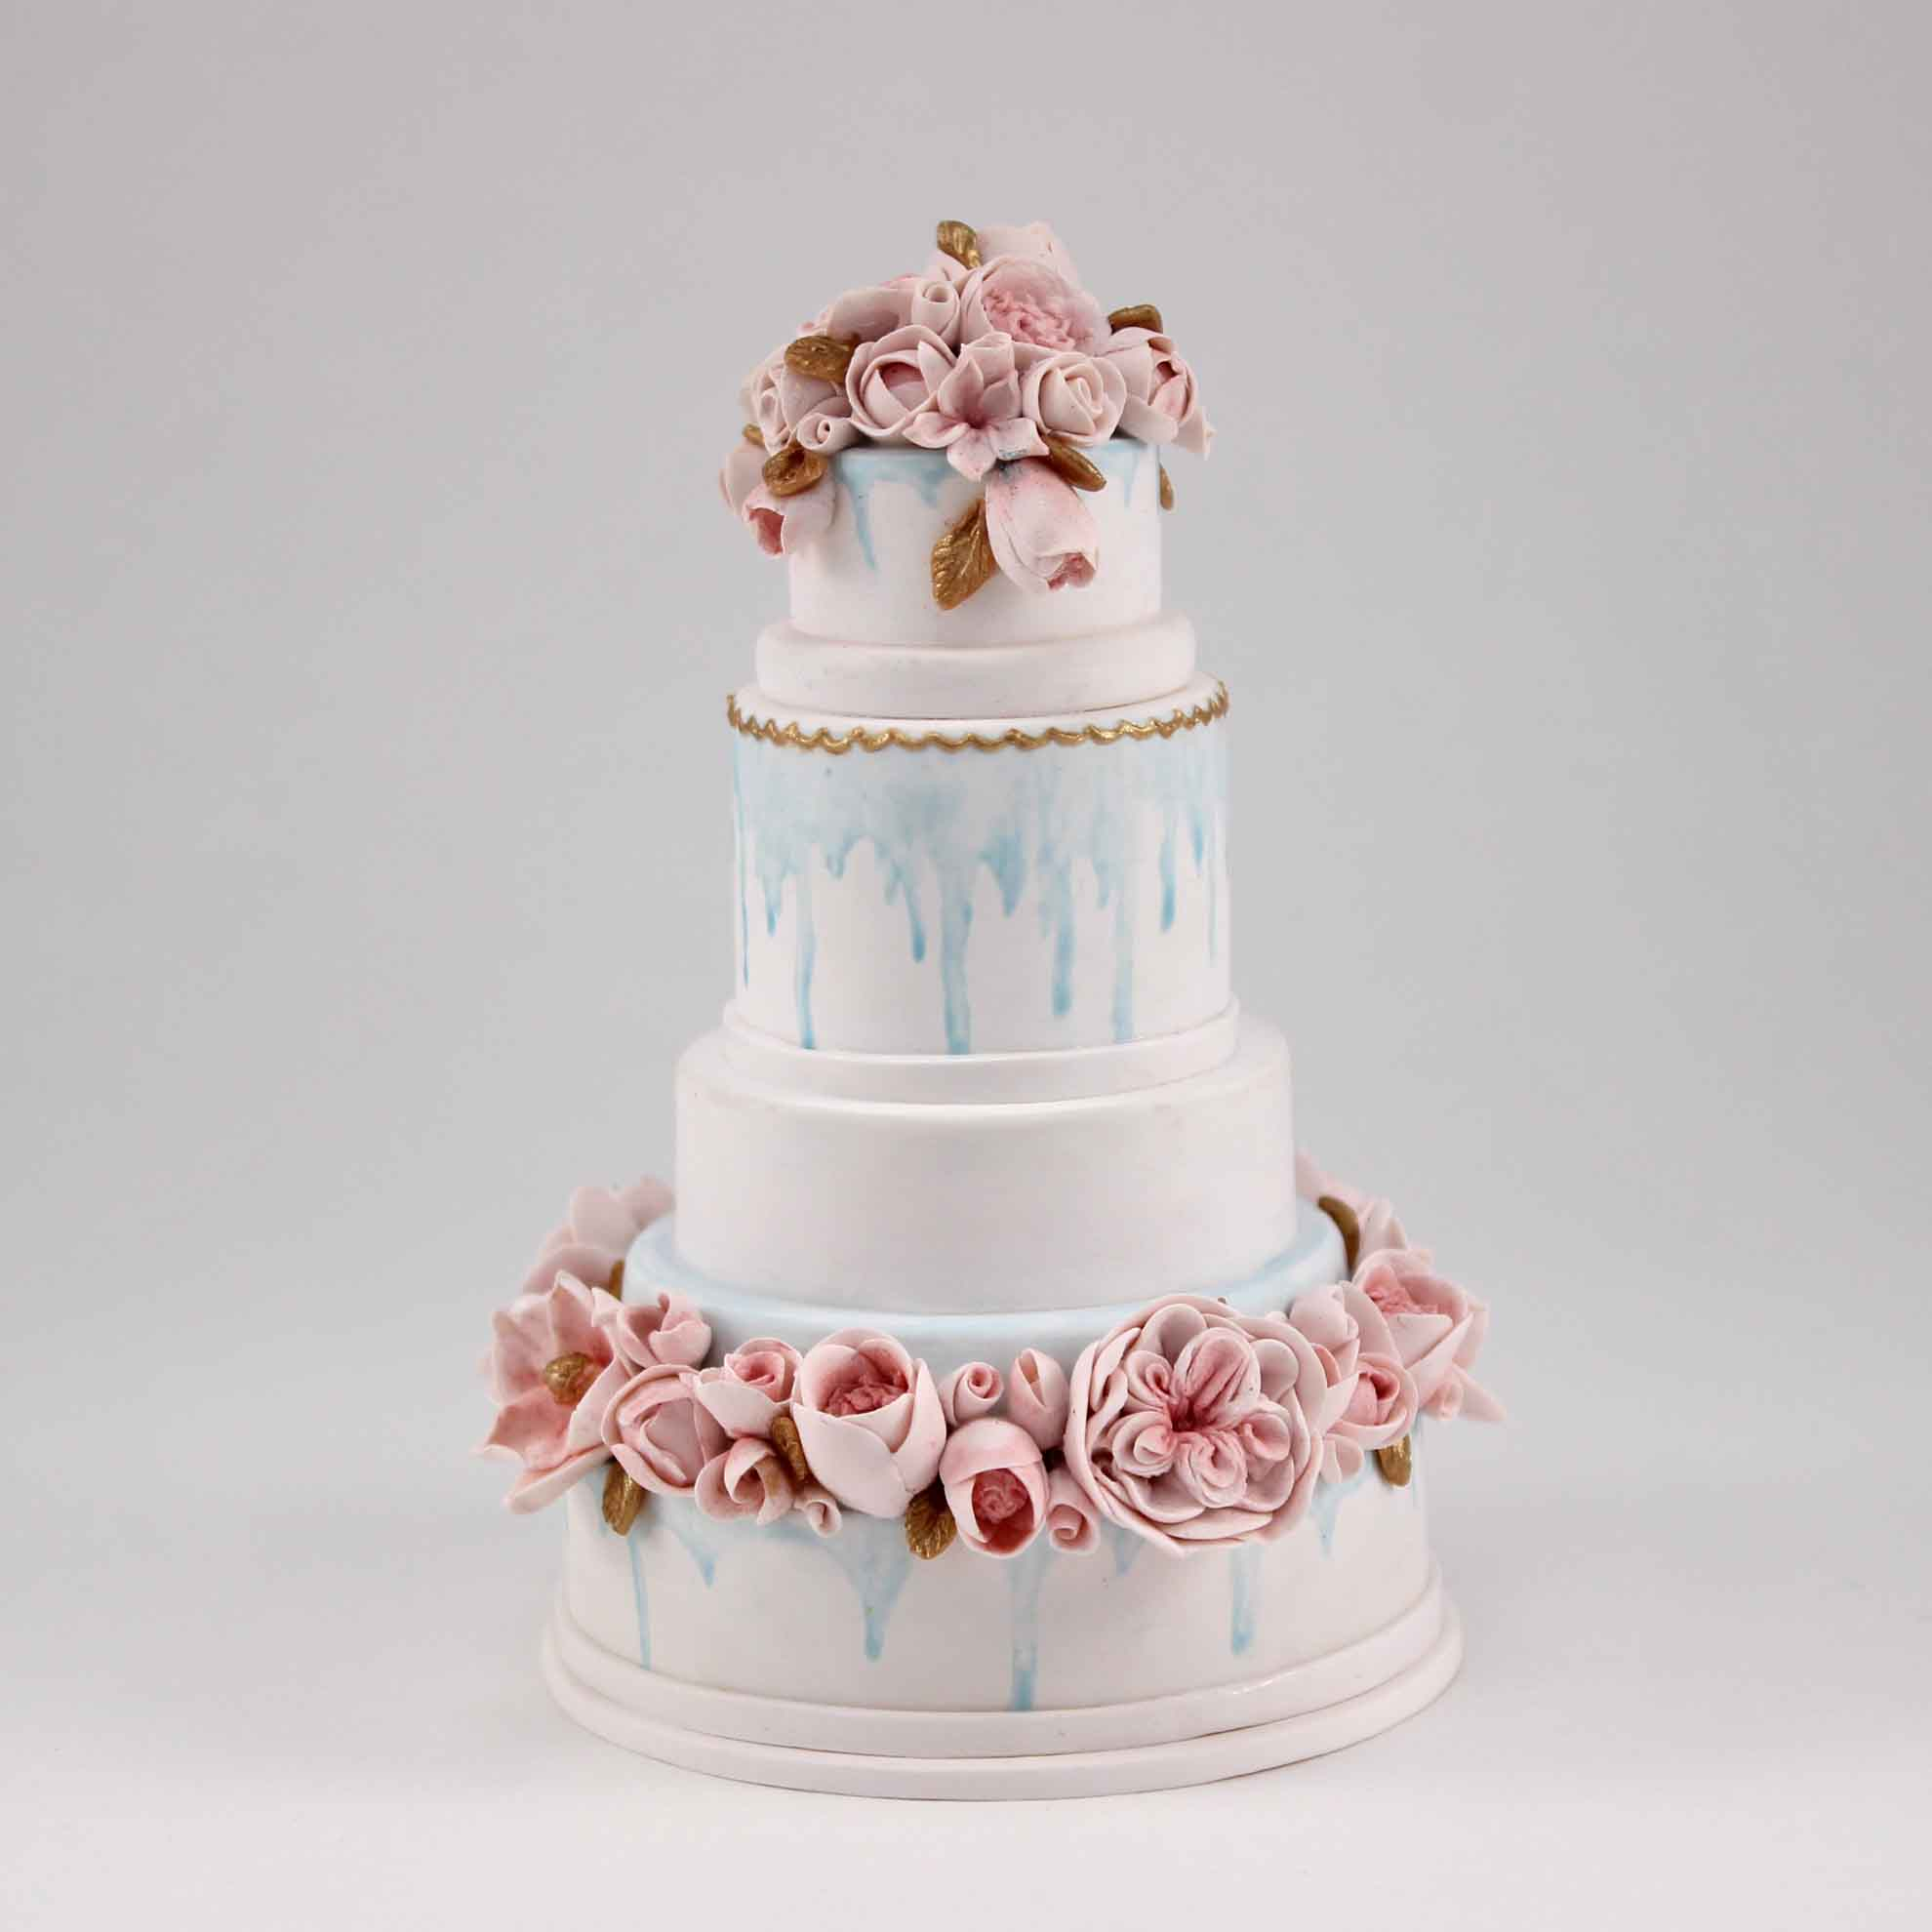 Minature of beautiful wedding cake with sugarflowers and light blue painted.jpg